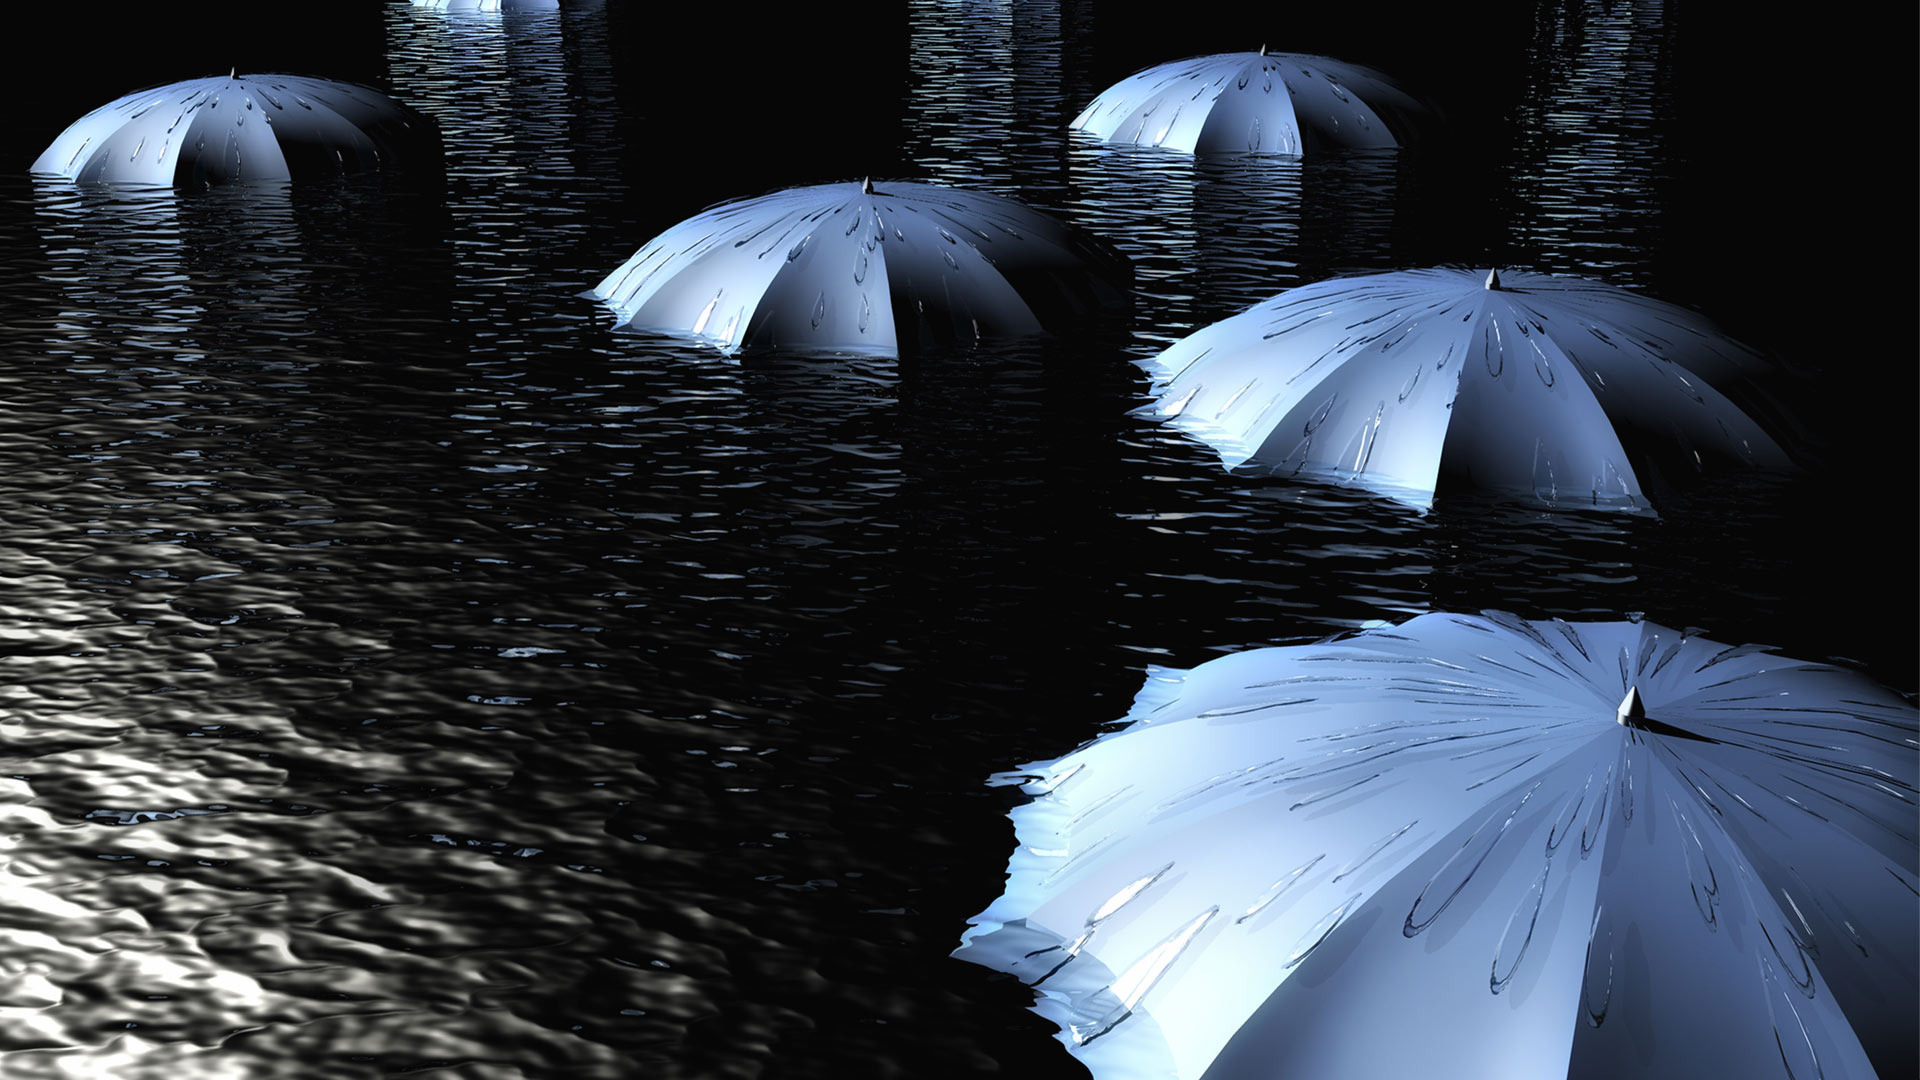 umbrellas-in-water-hd-wallpaper